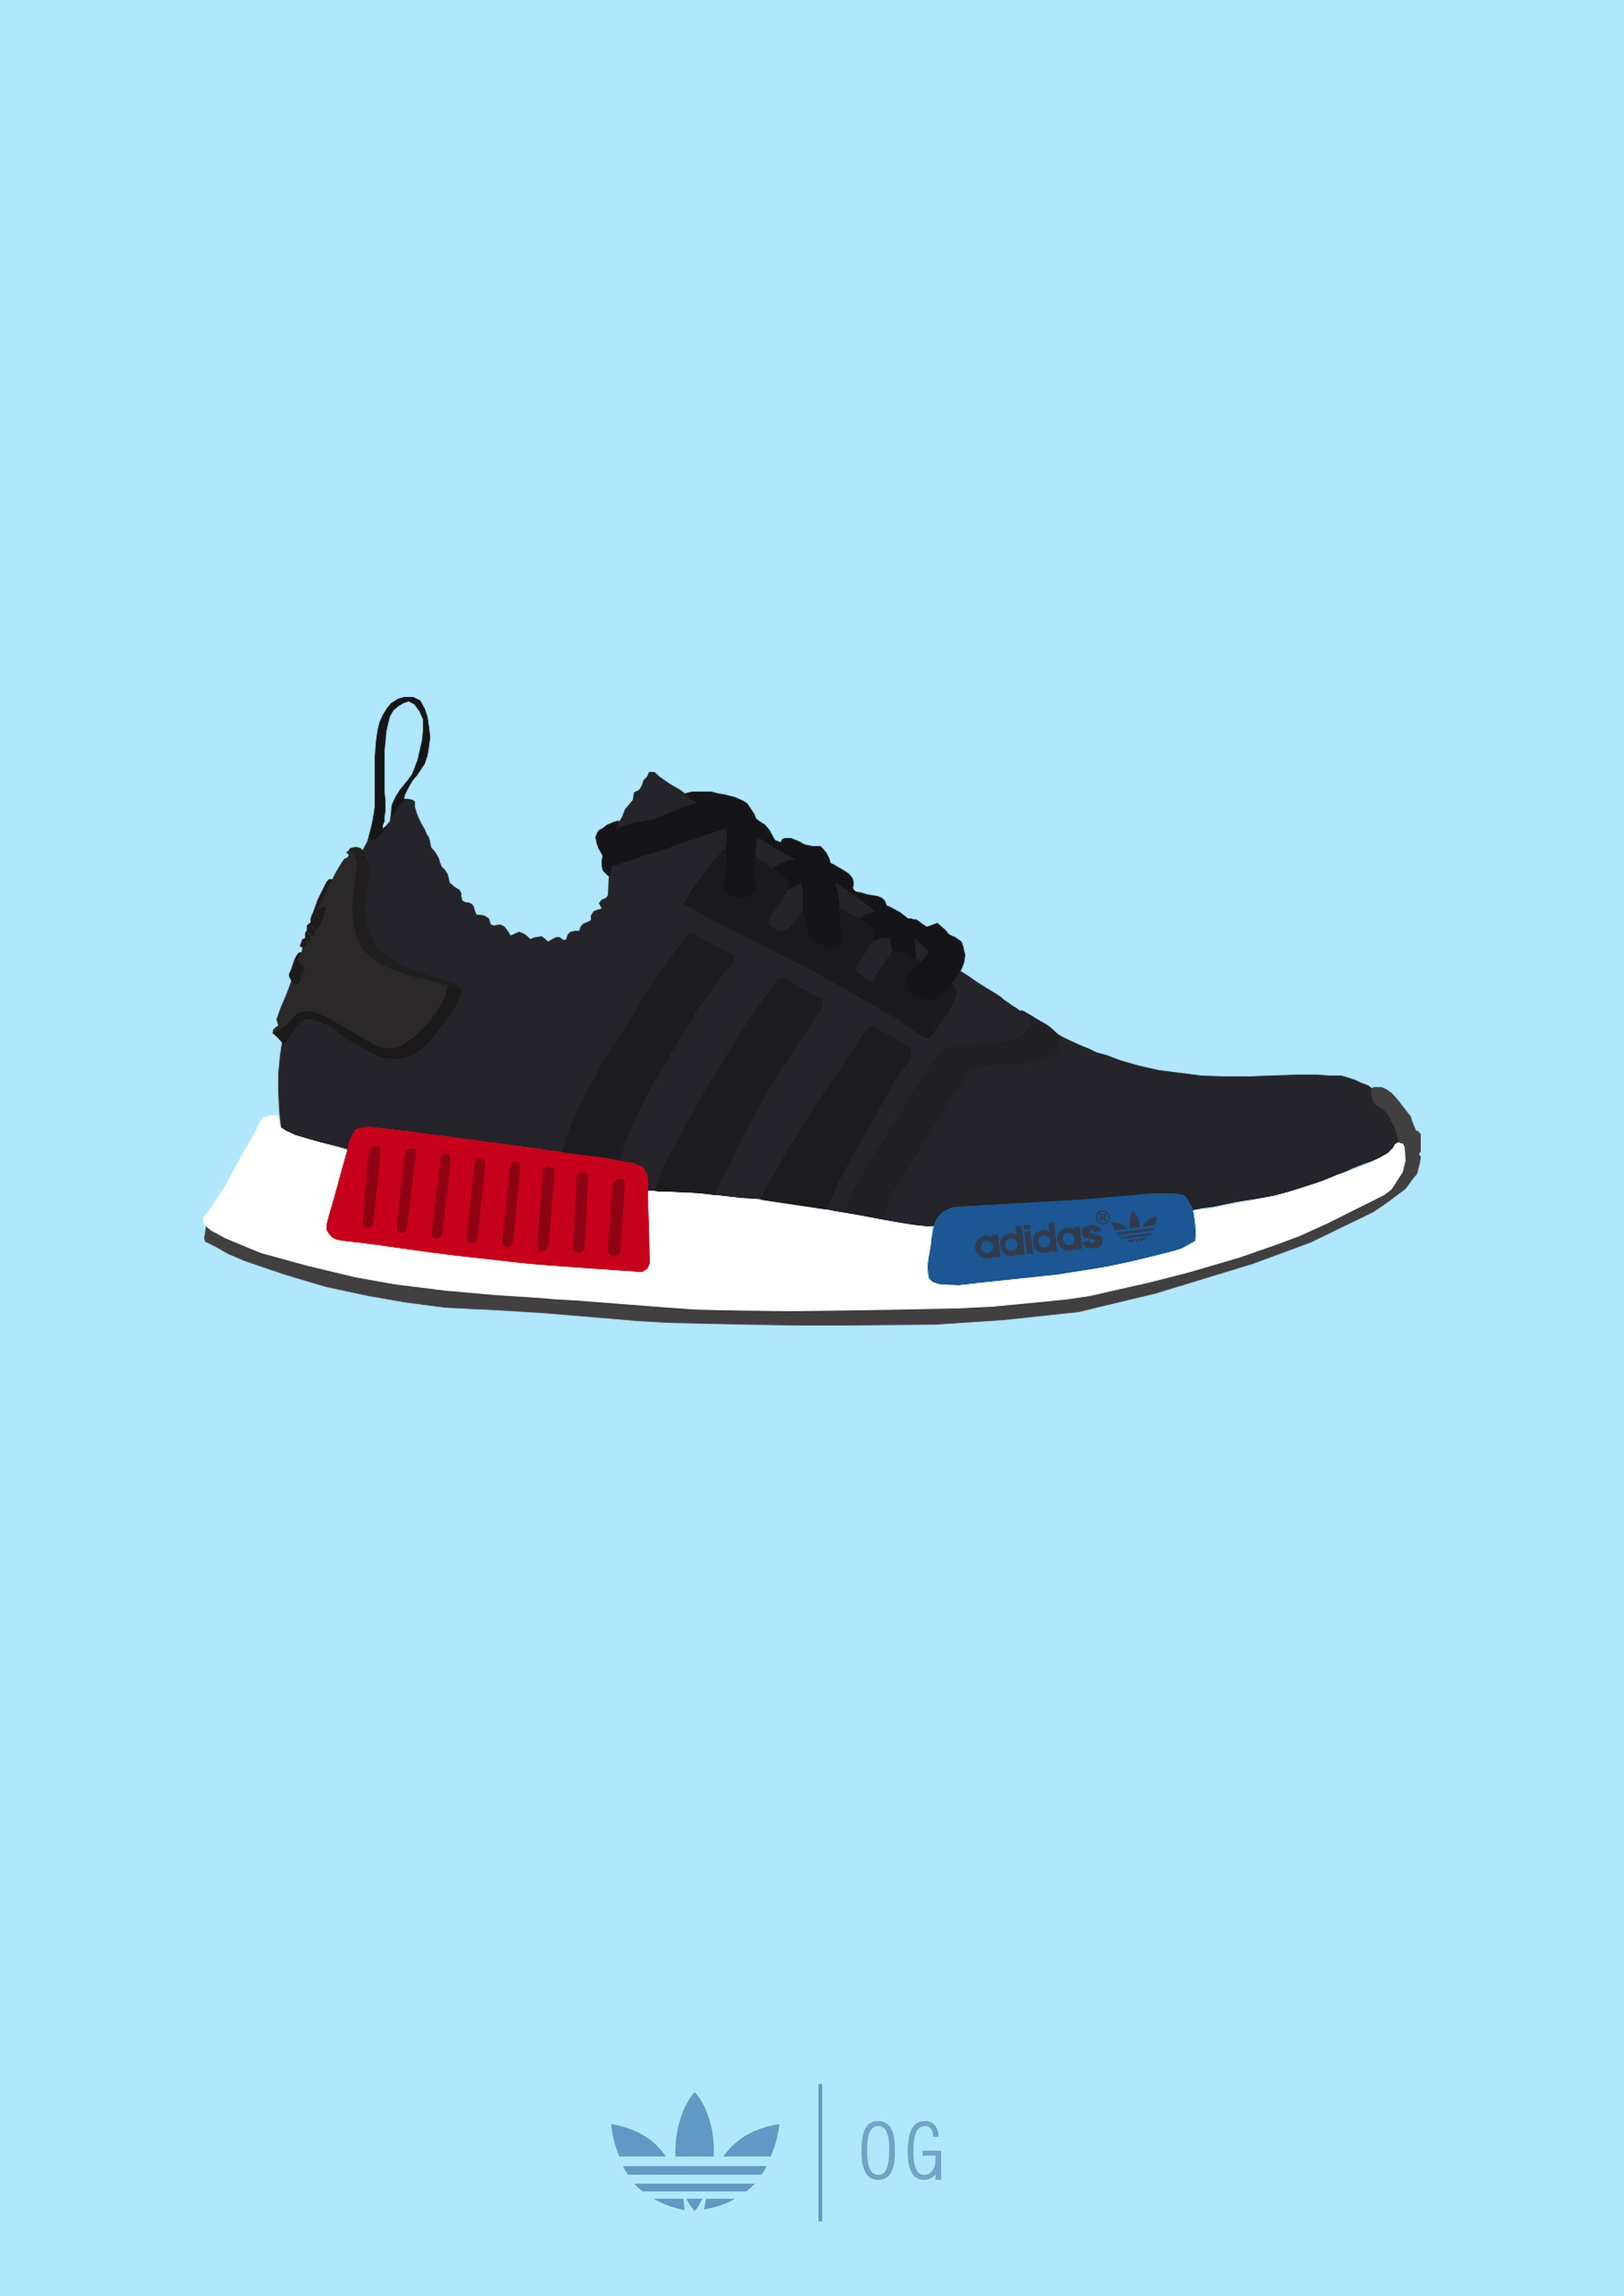 NMD Wallpapers - Wallpaper Cave